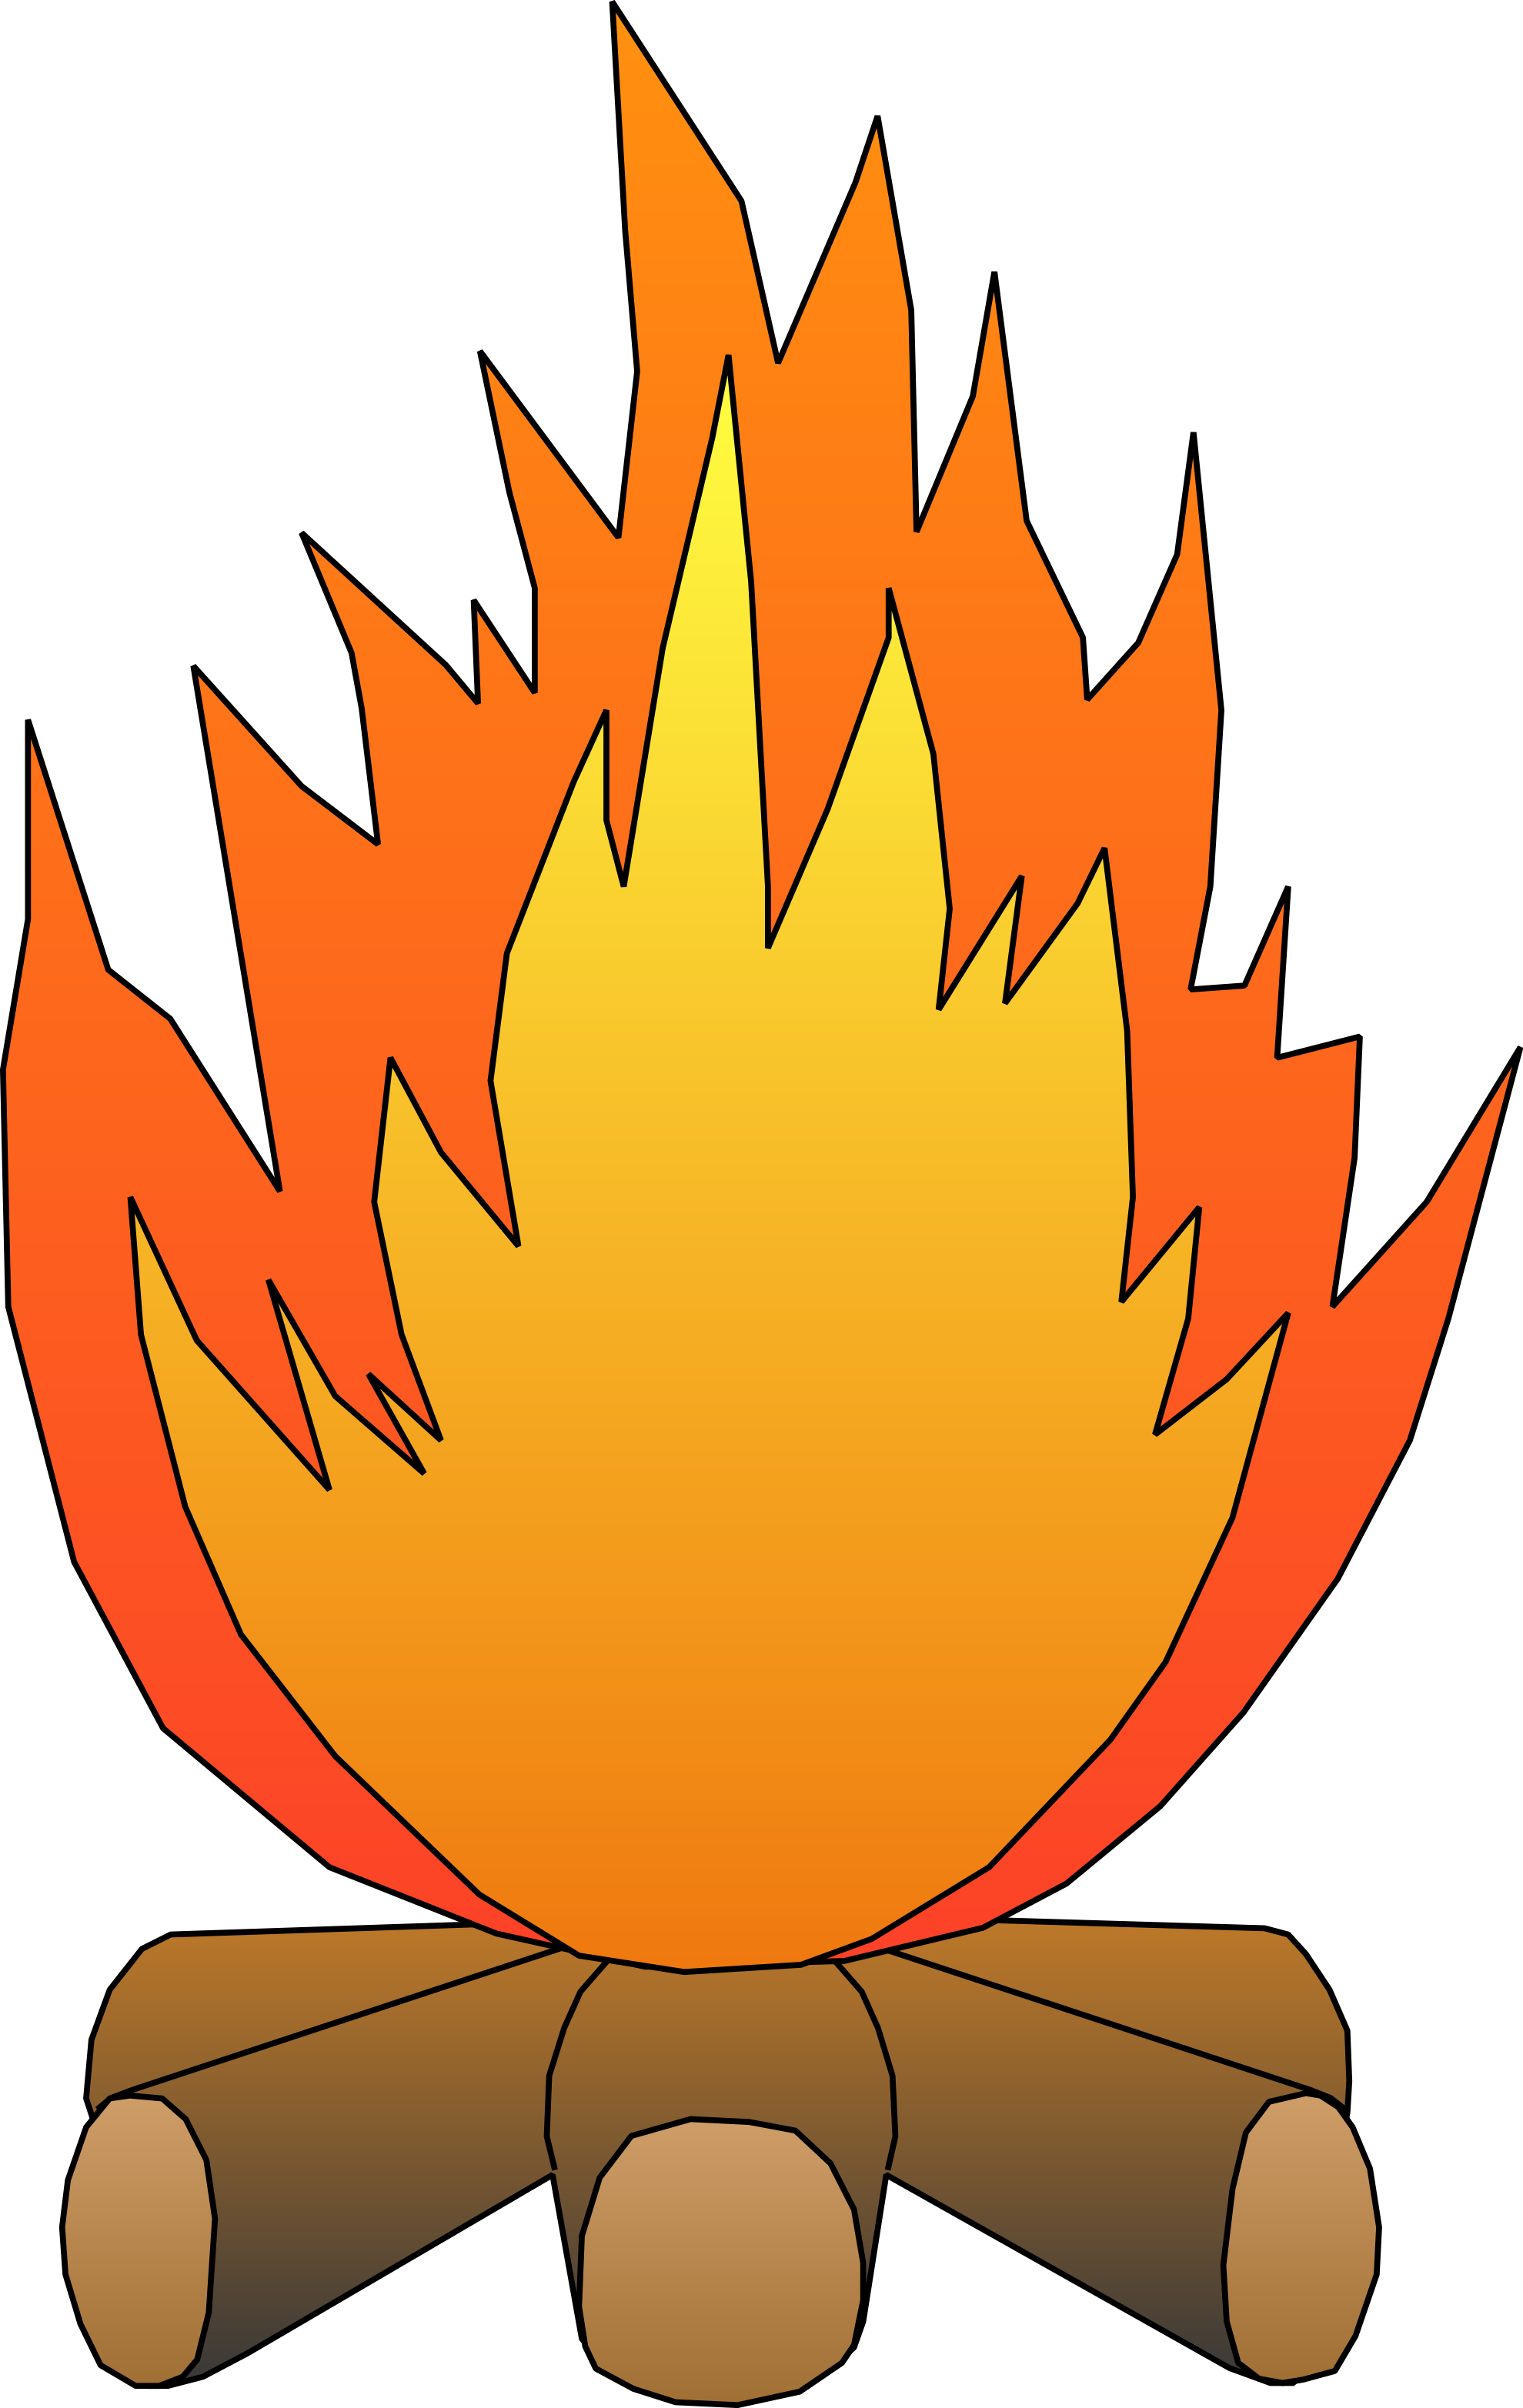 Firewood clipart bon fire. Free picture of a